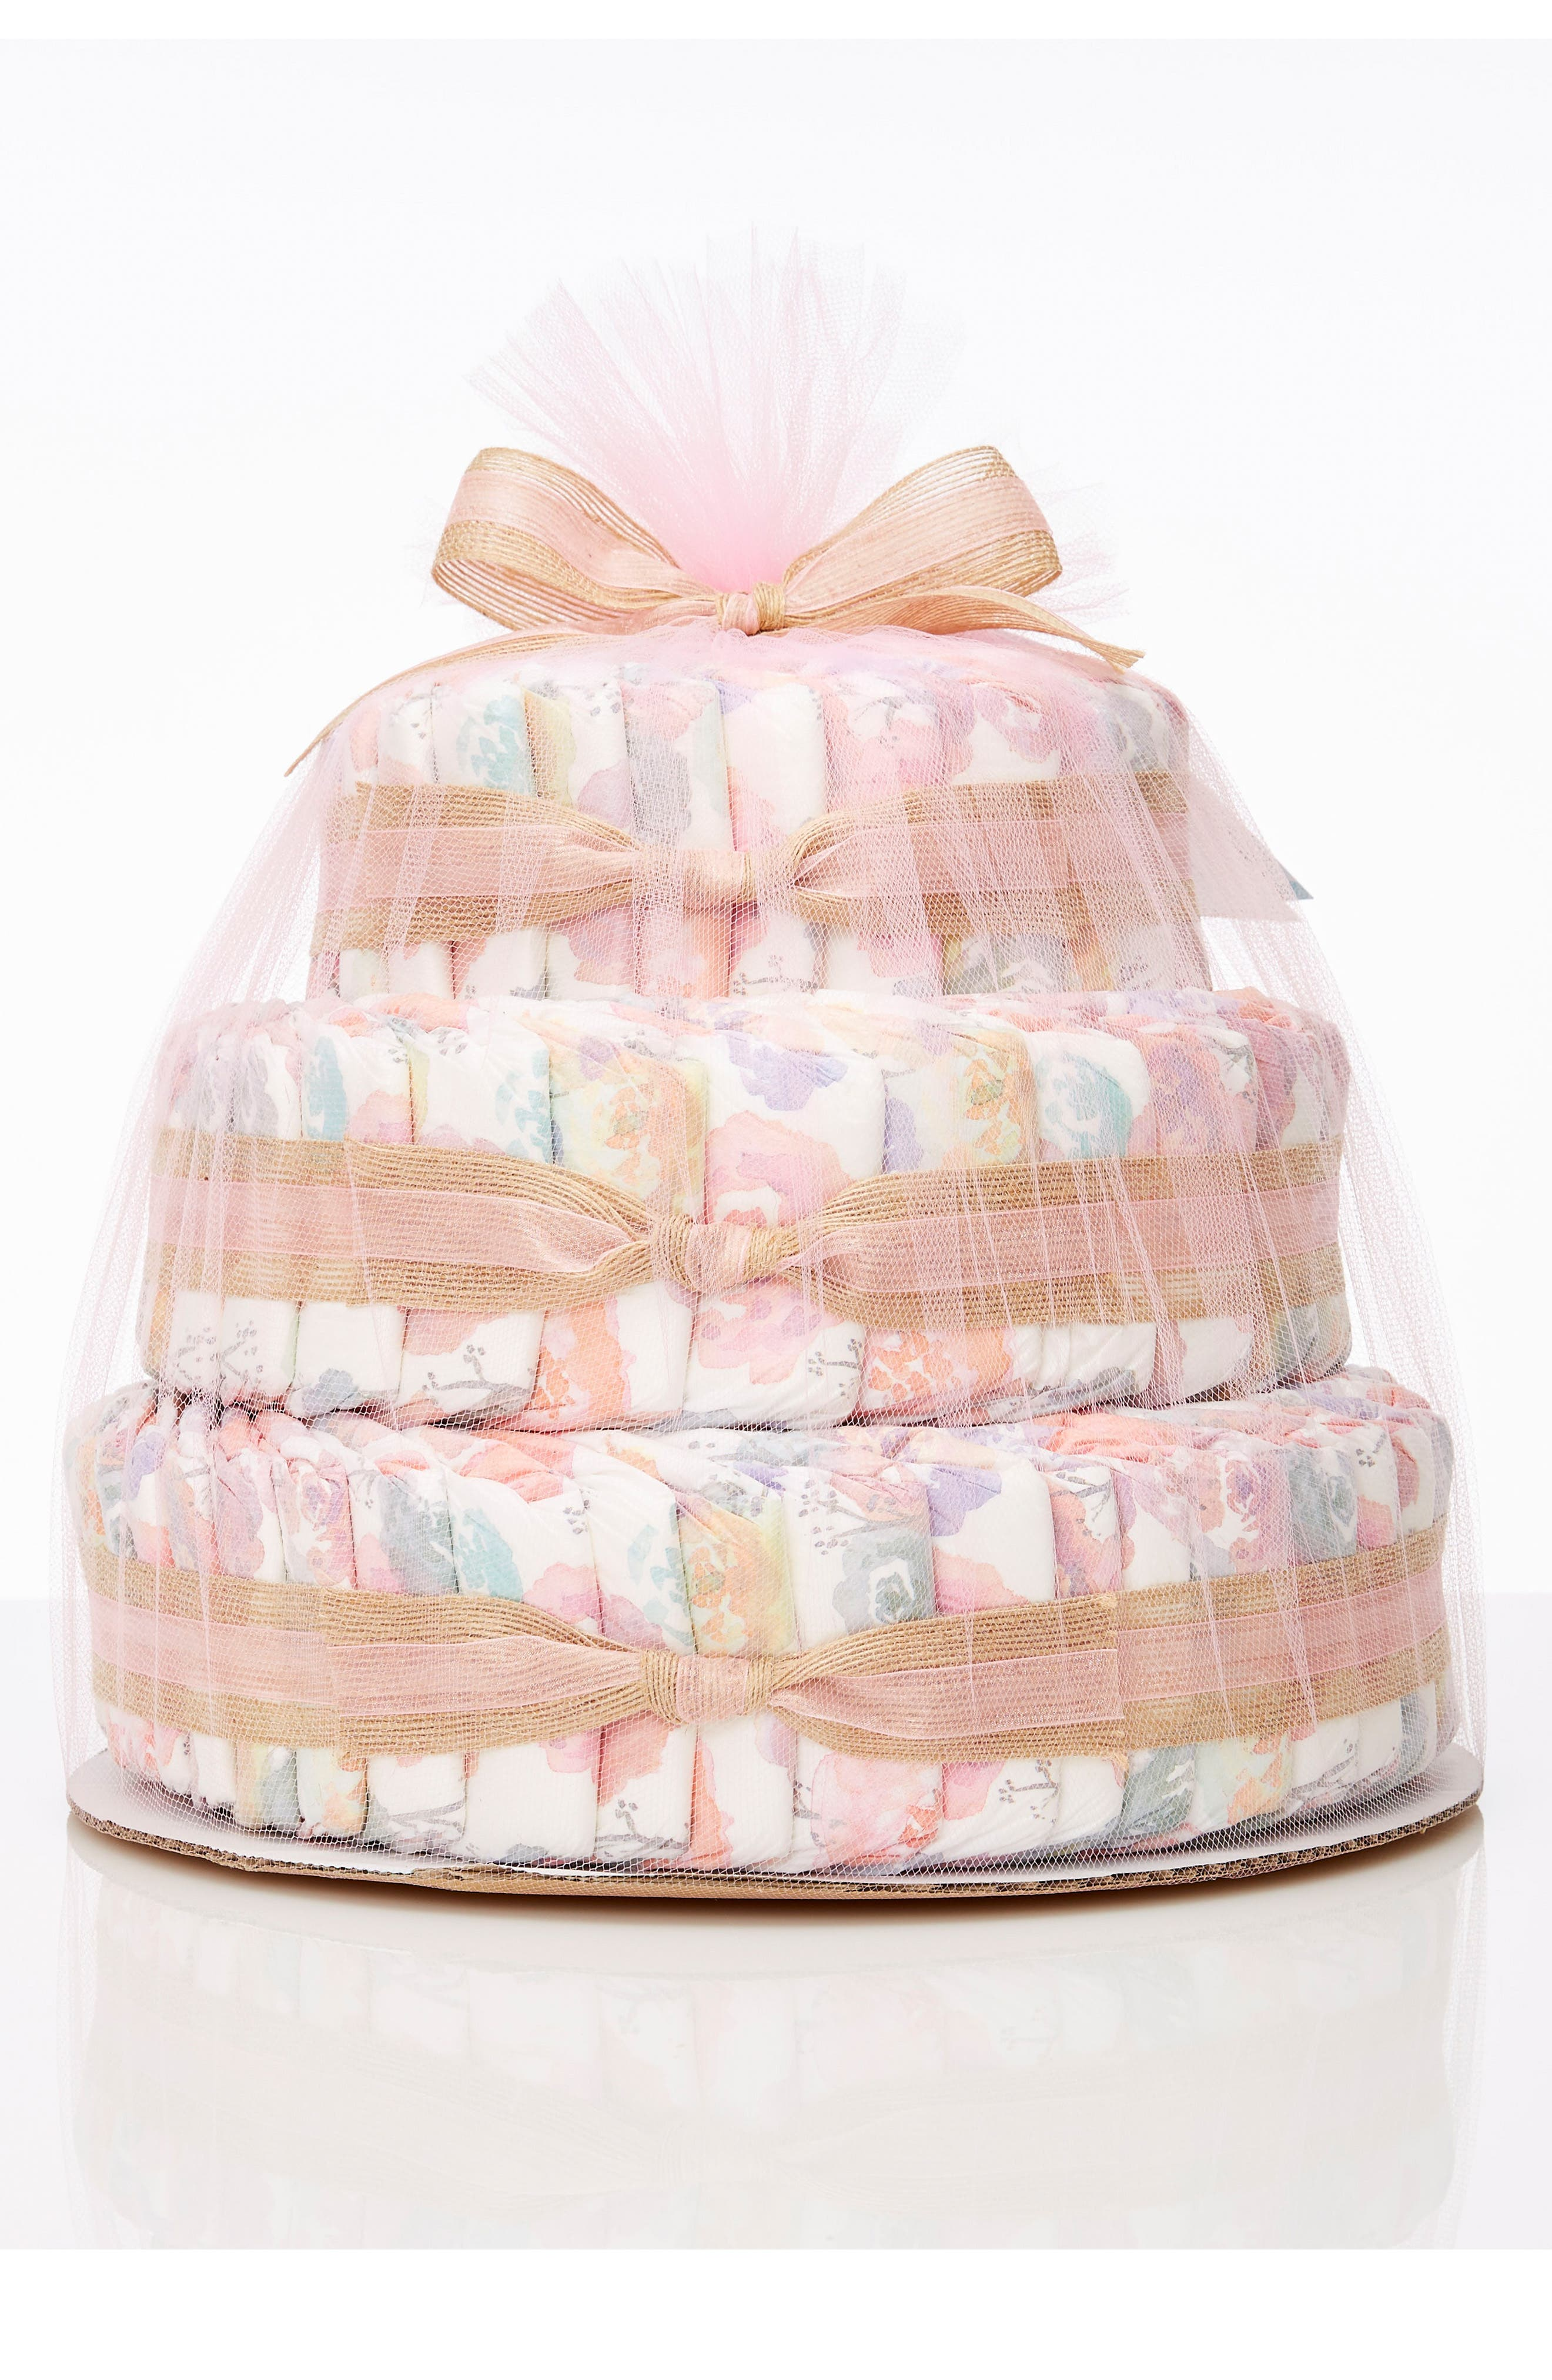 Main Image - The Honest Company Large Diaper Cake & Full-Size Essentials Set